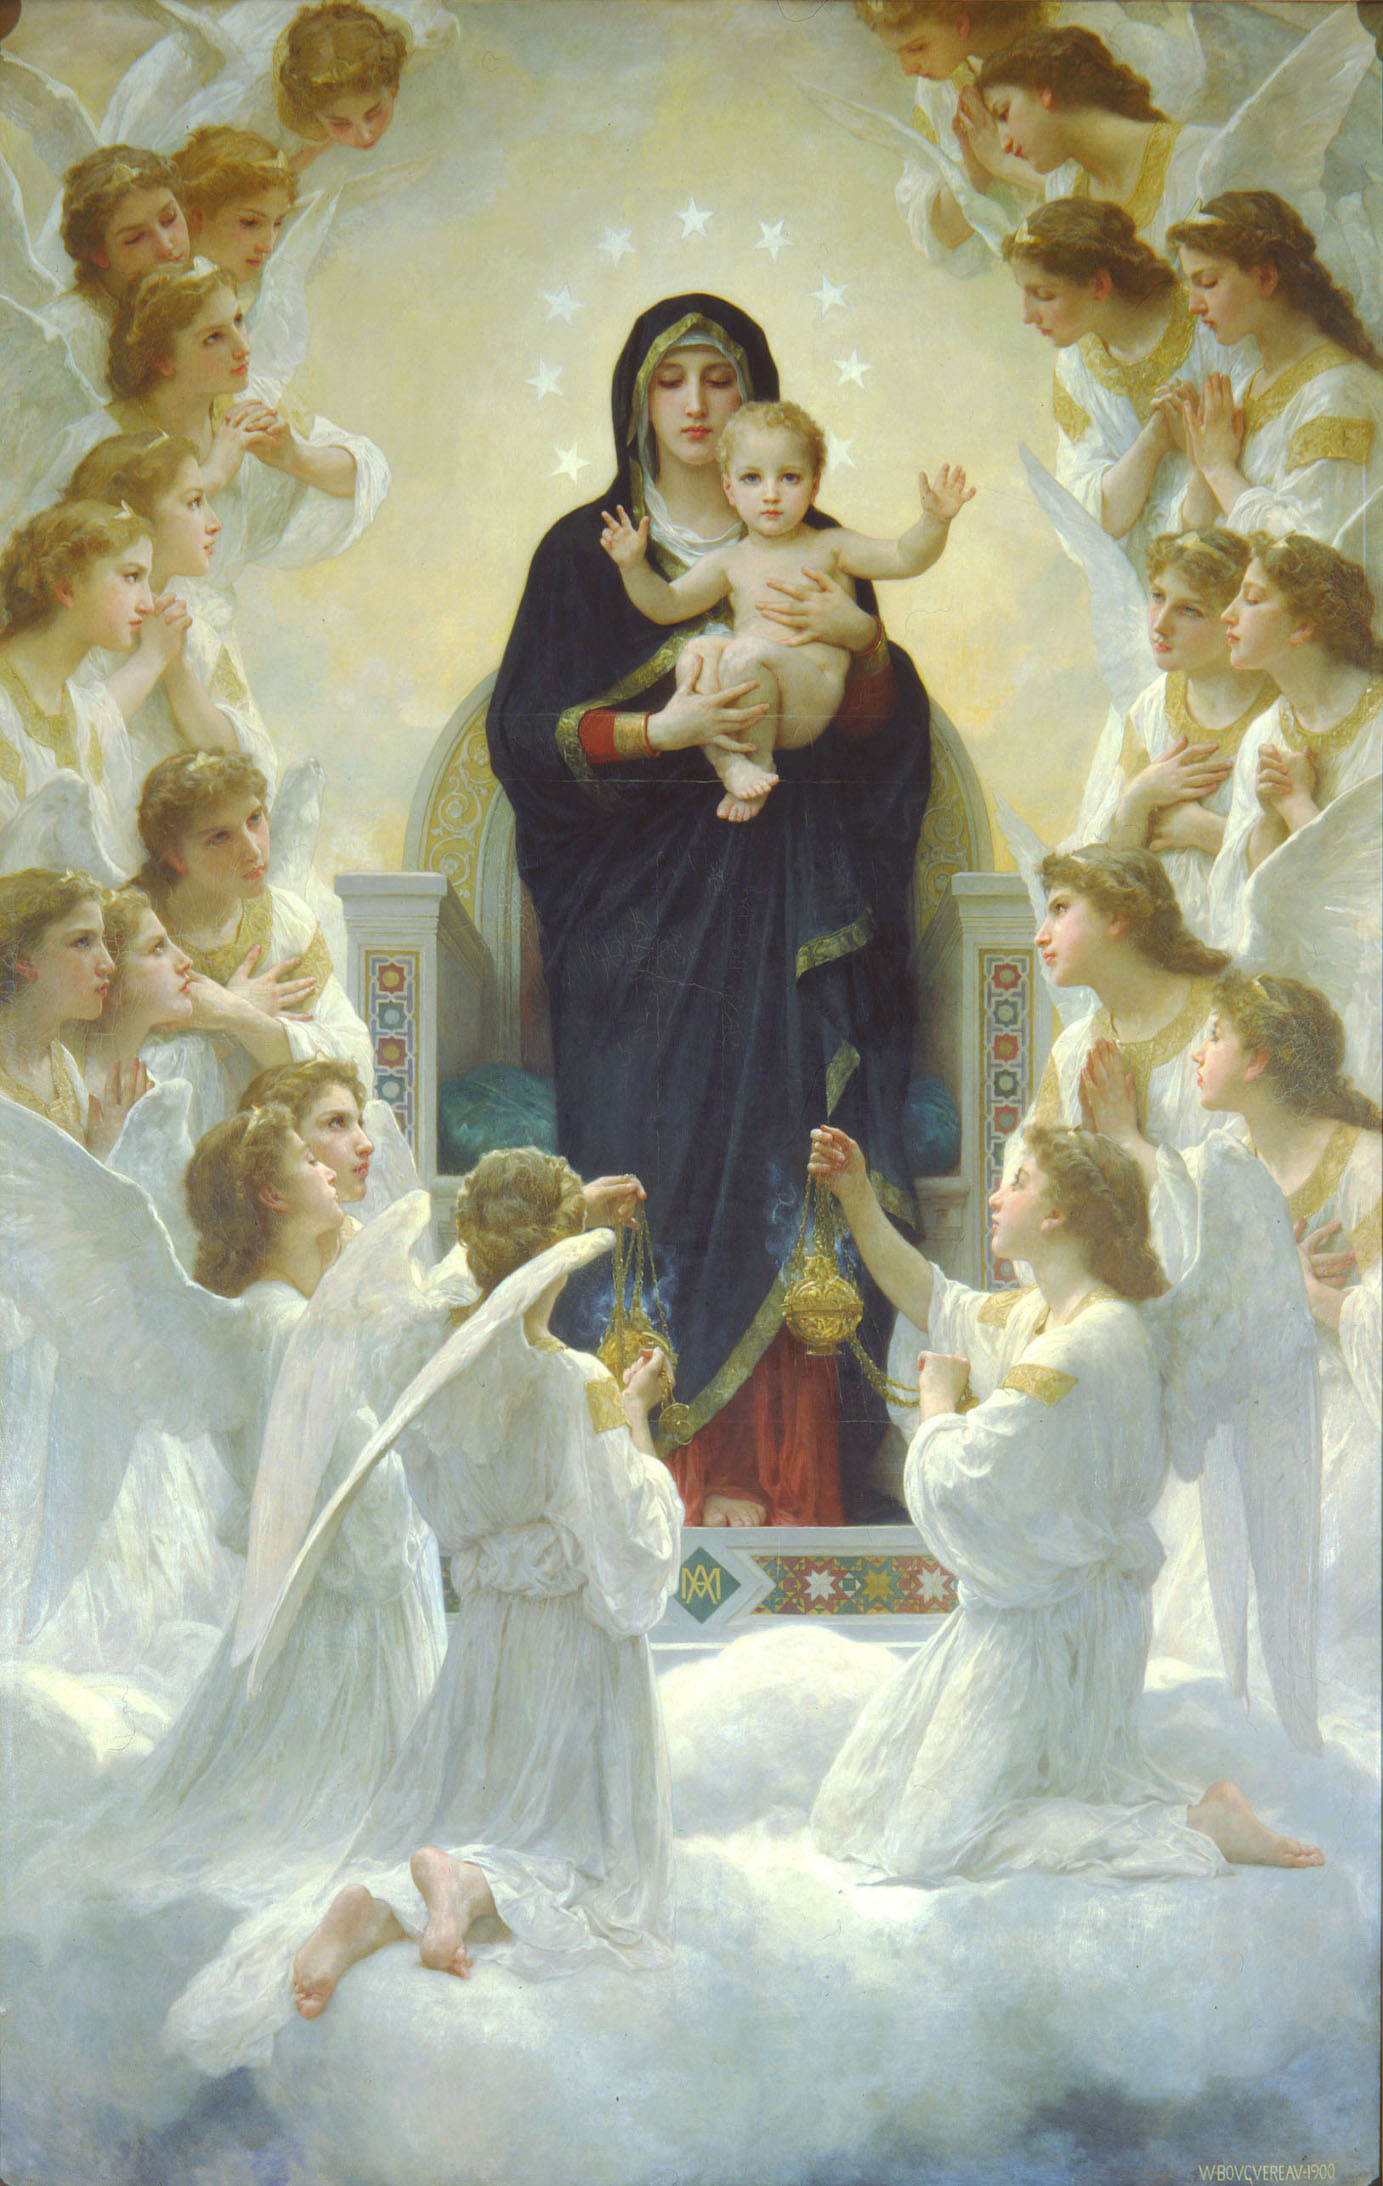 All About The Solemnity of the Assumption of Mary